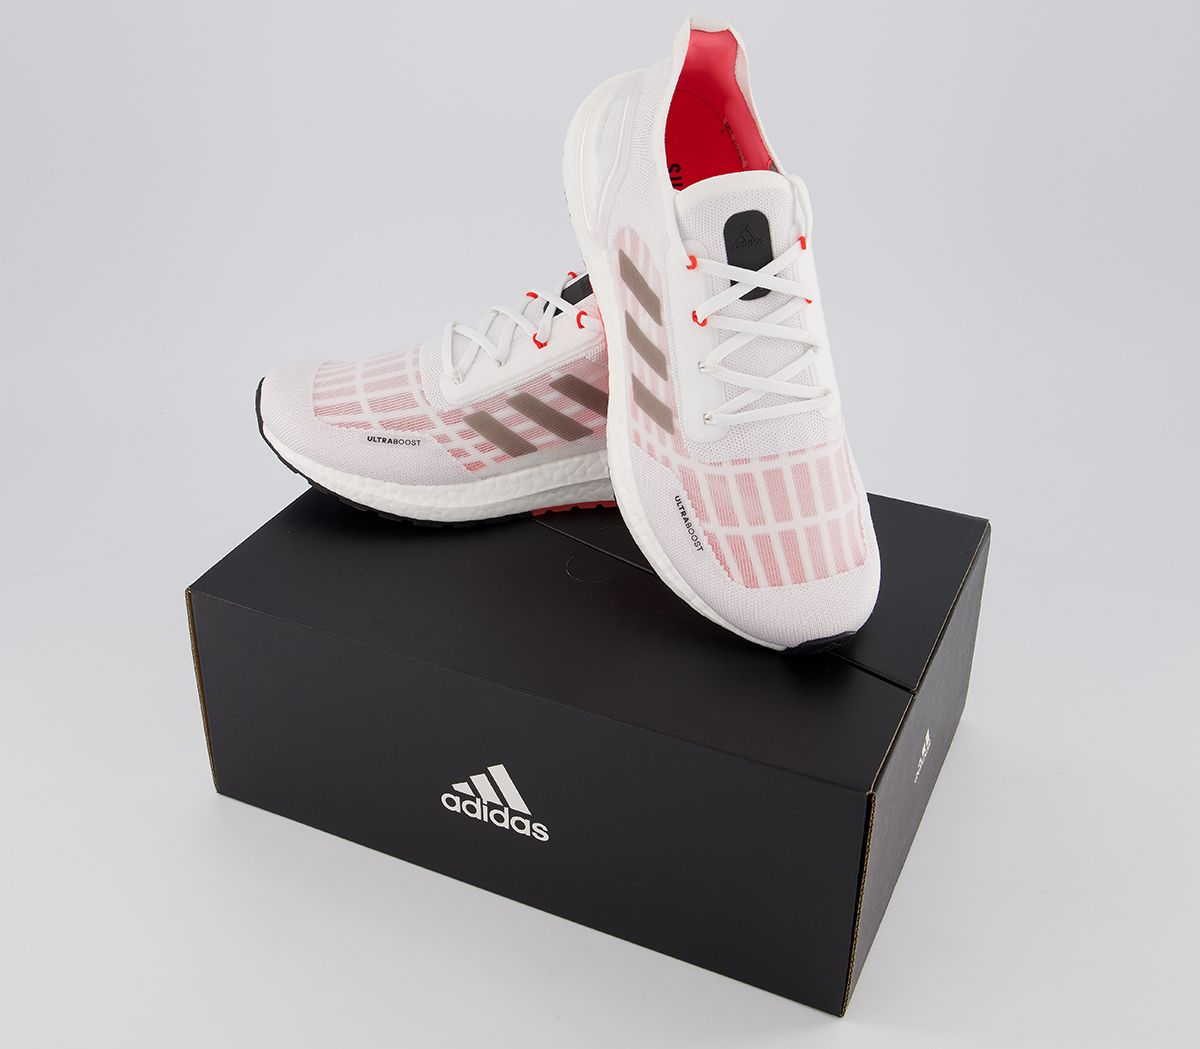 Adidas-ultraboost-S-RDY-Baskets-Rouge-Blanc-Baskets-Chaussures miniature 4